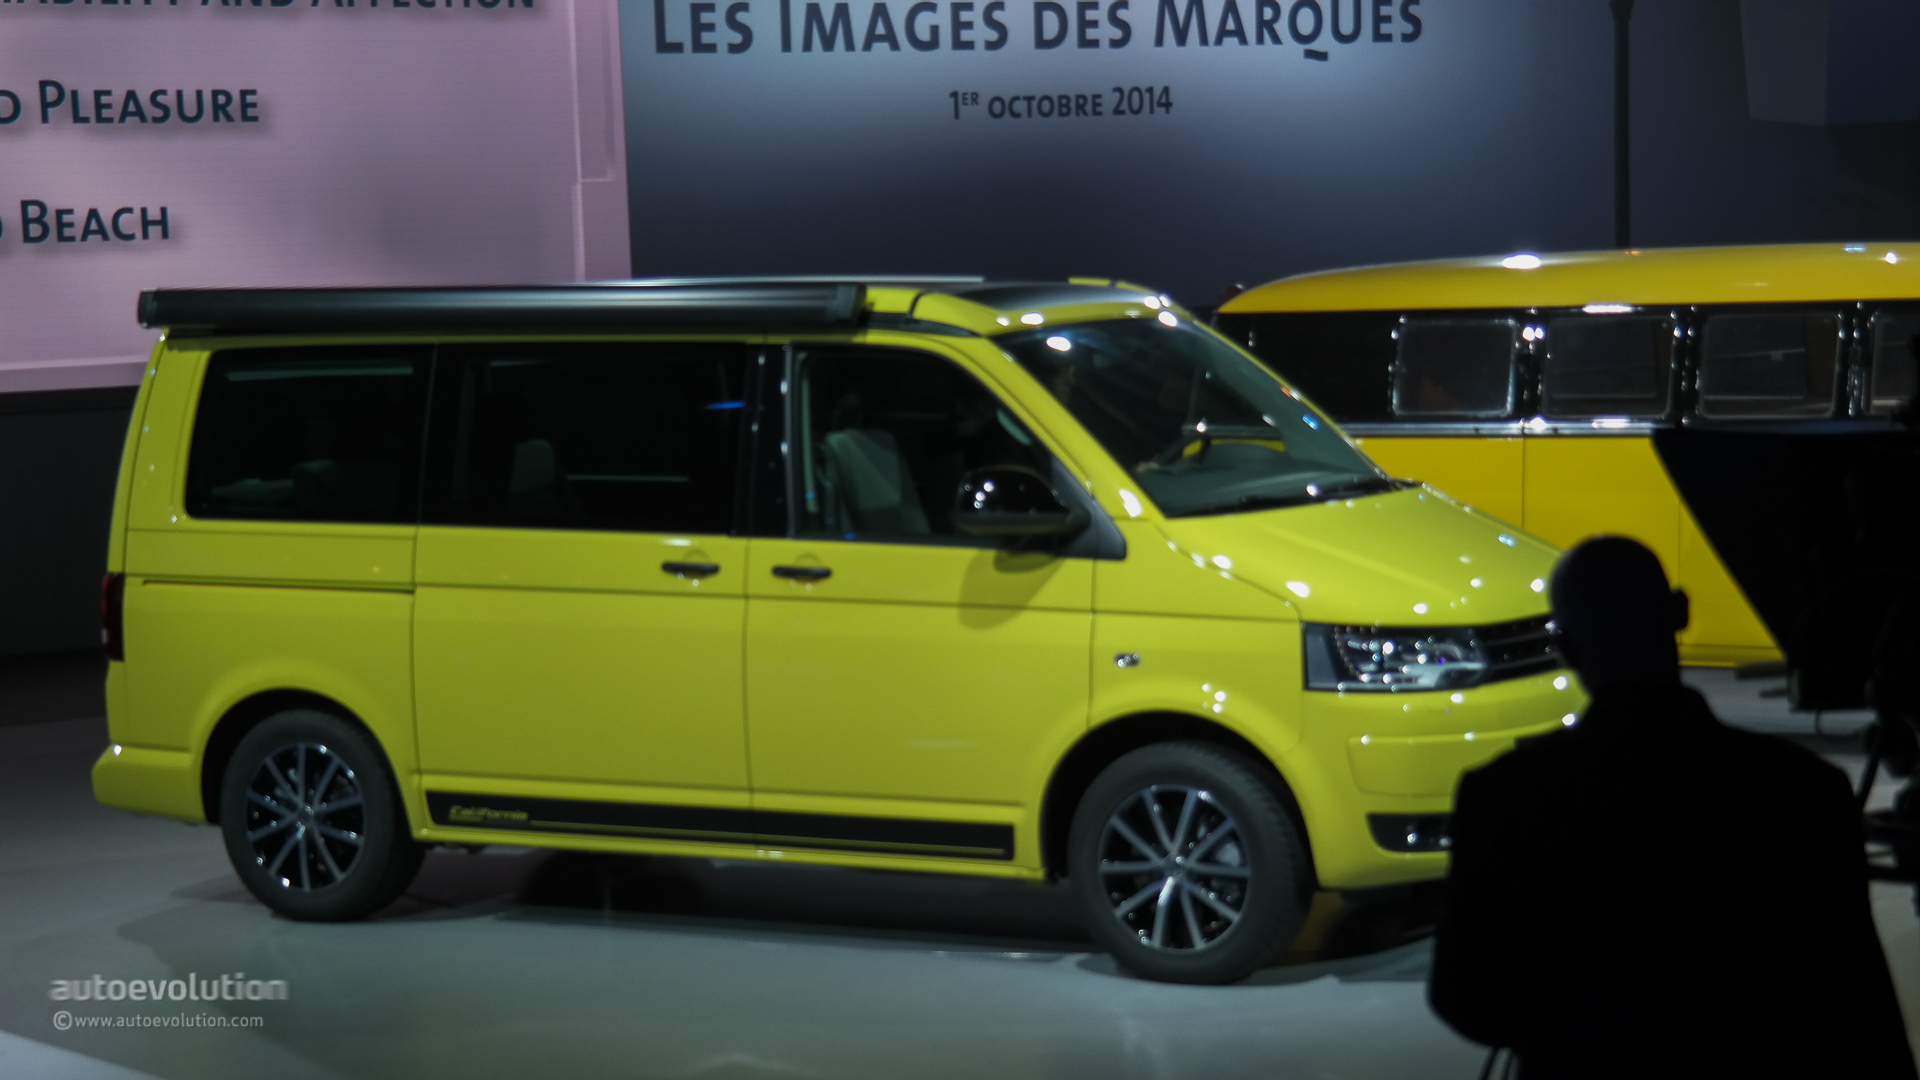 Volkswagen Tristar Signals The Vw T6 Van Is Coming Live